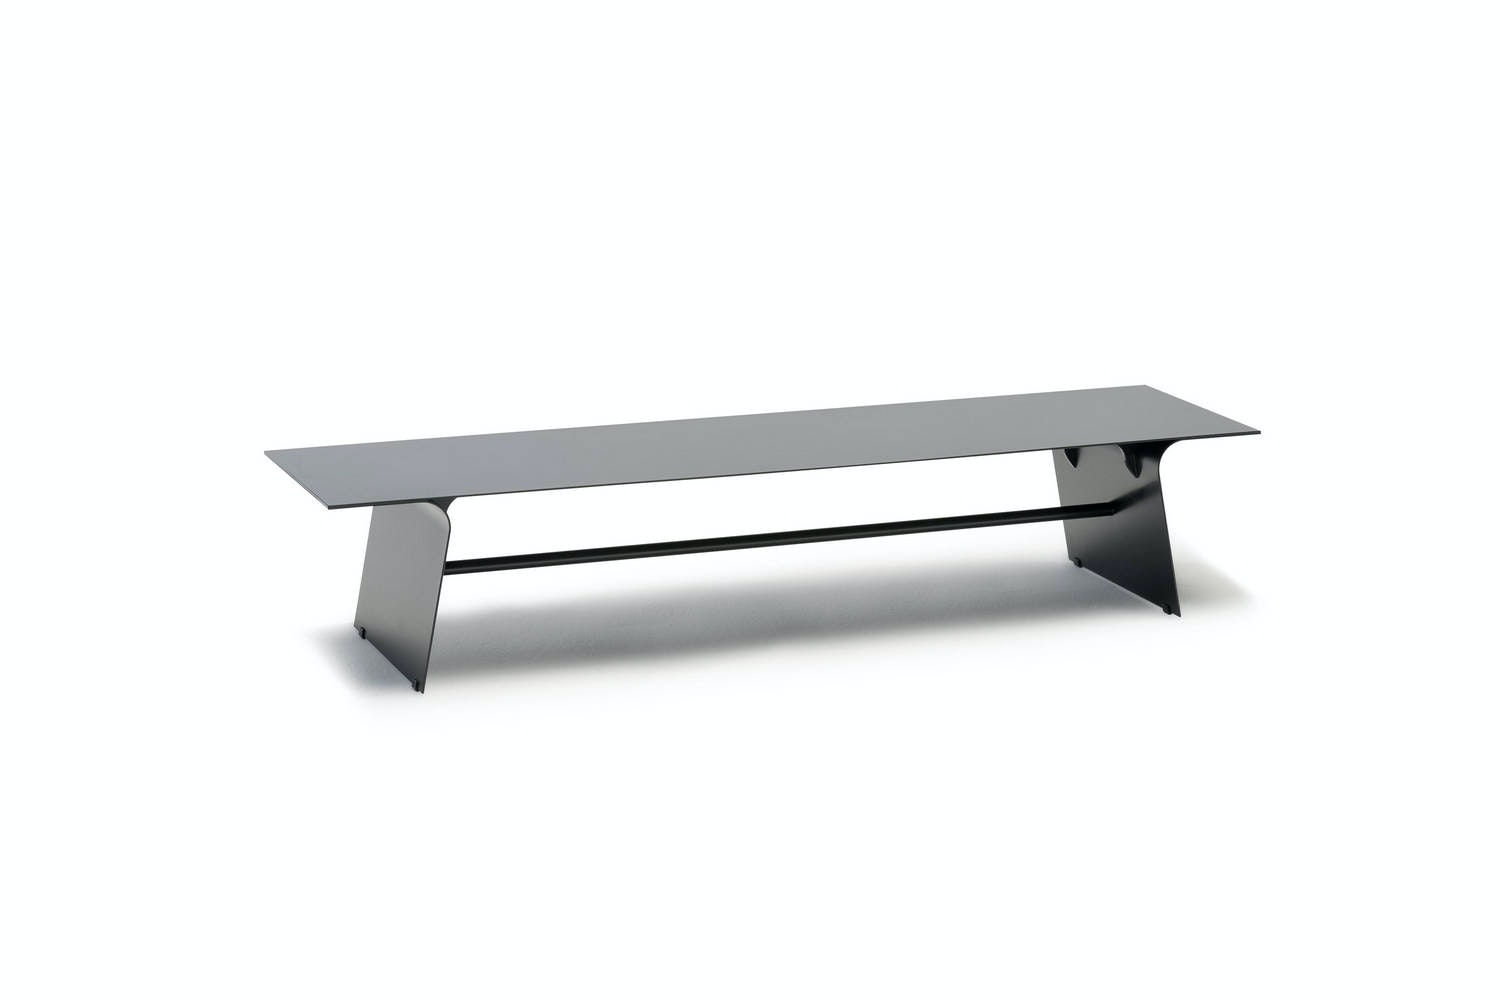 Inari Bench by Mist-o for Living Divani